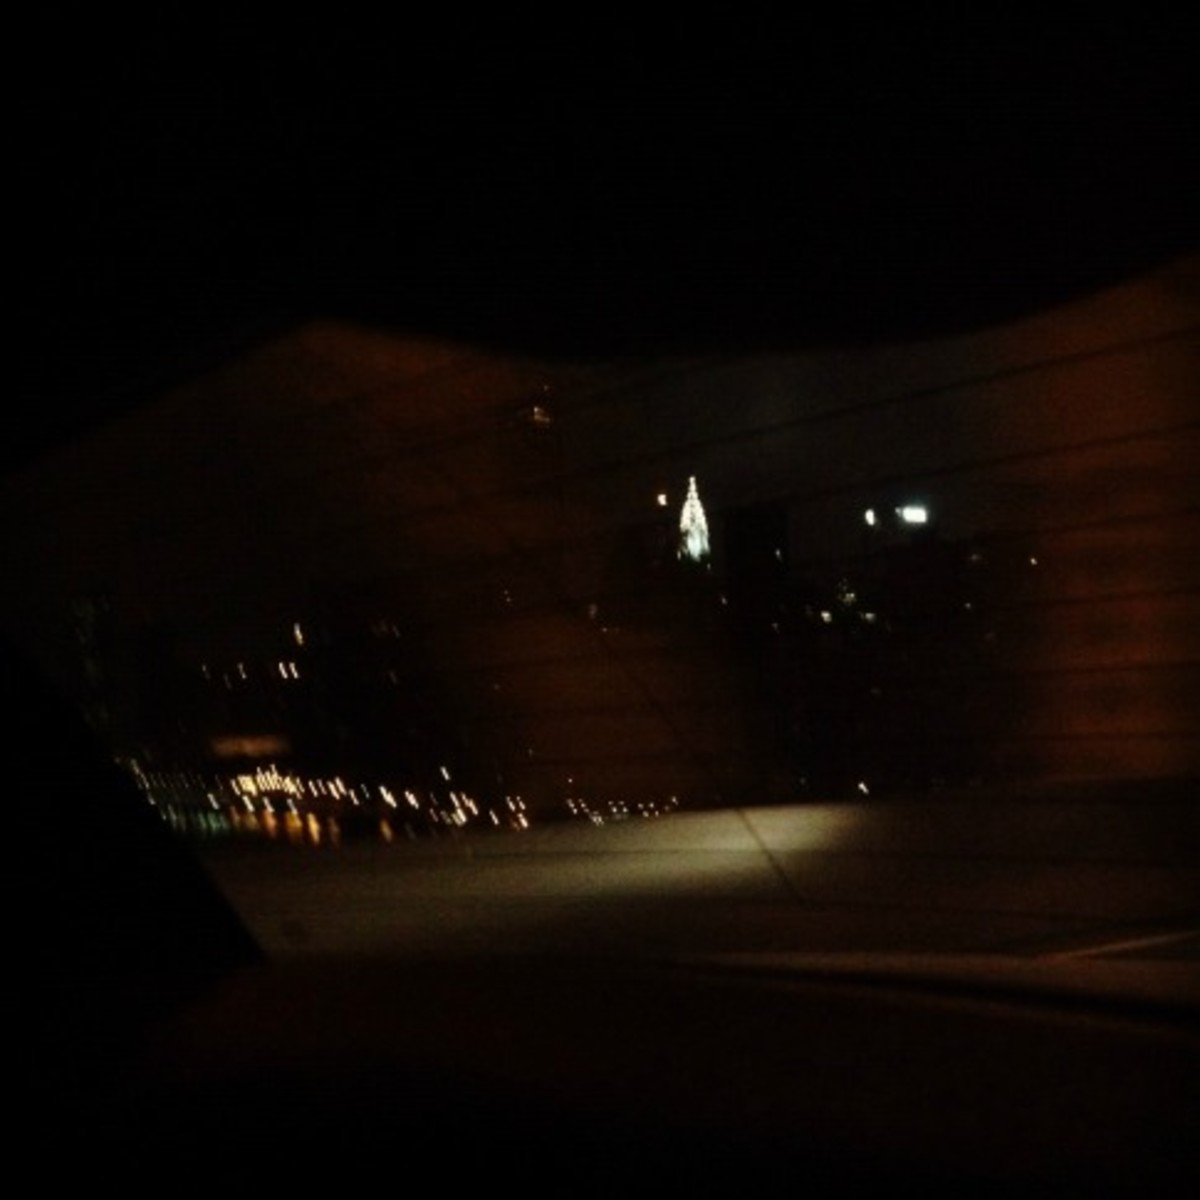 My one and only shot of the Chrysler Building, taken at 3:45 in the morning as I headed home so I could spend Sunday with my family.